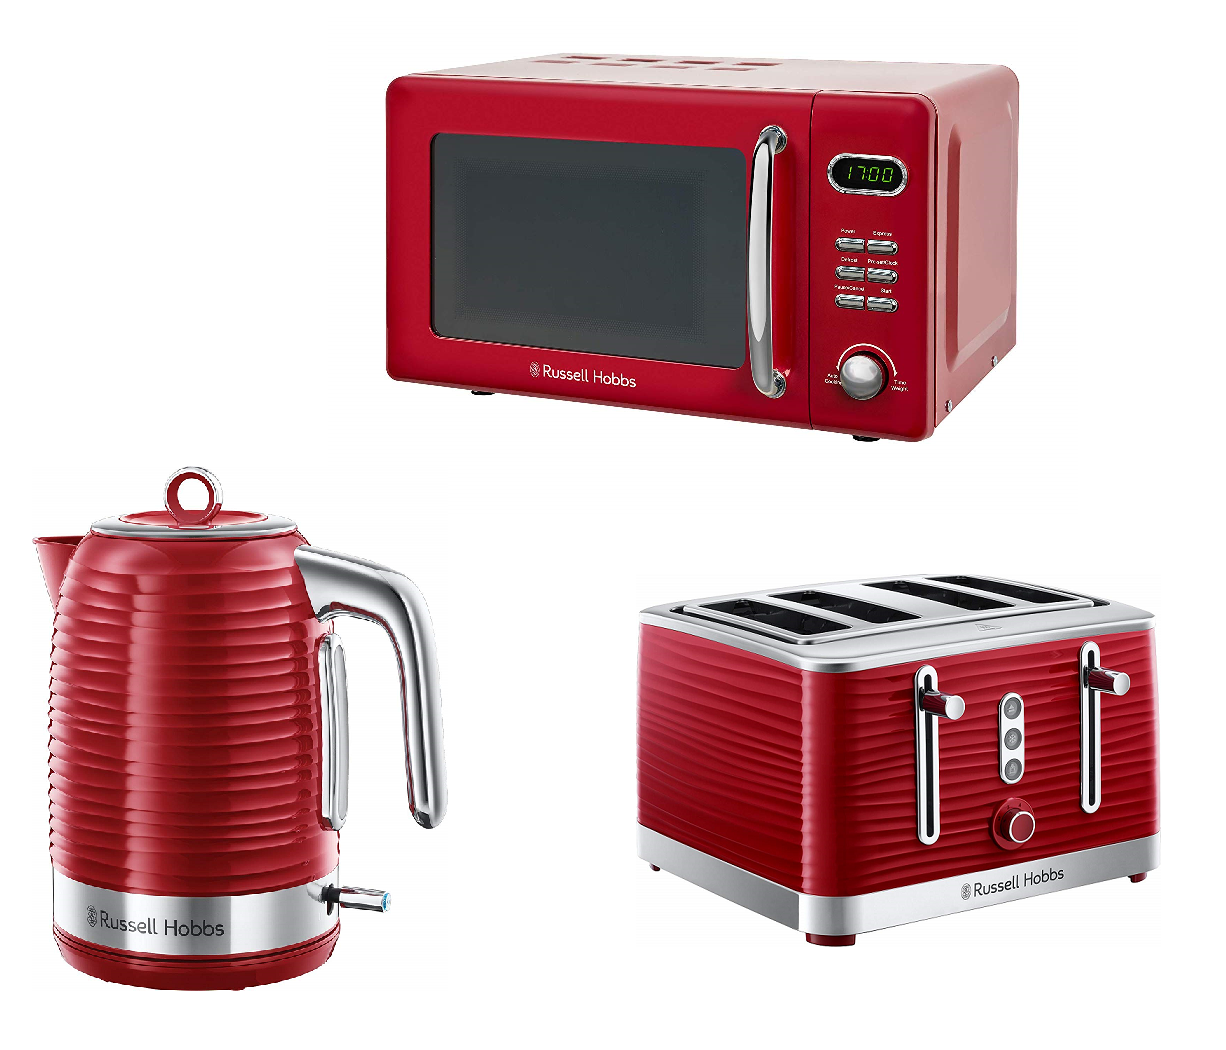 Coffee and Sugar Canisters Tea Red Russell Hobbs Microwave Kettle Toaster Set